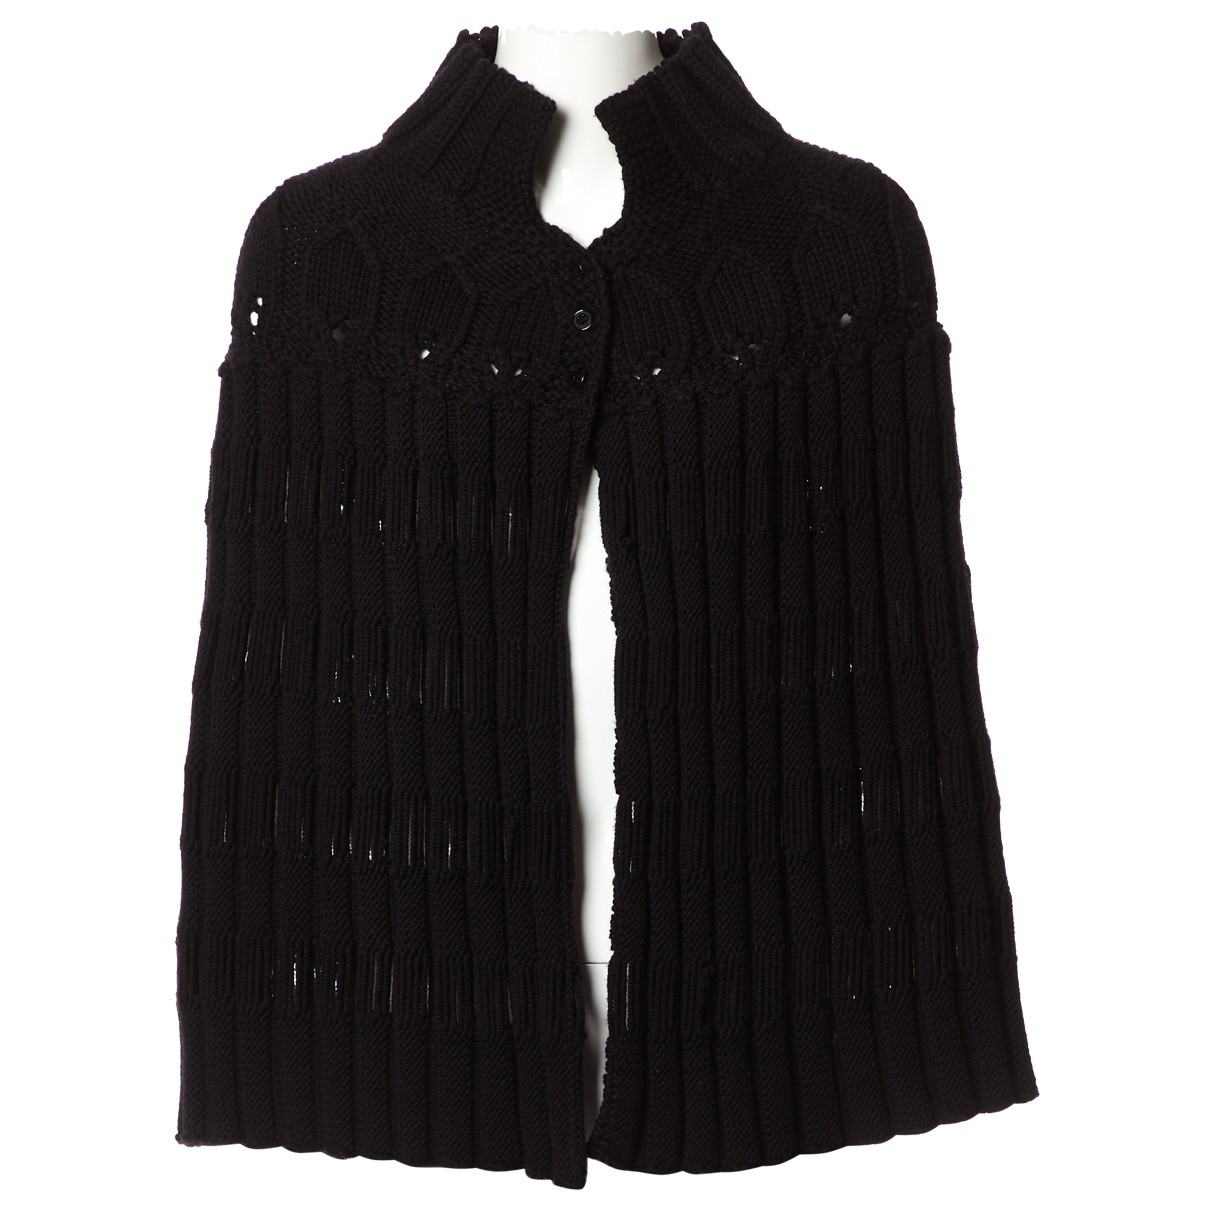 Saint Laurent \N Black Wool Knitwear for Women One Size International